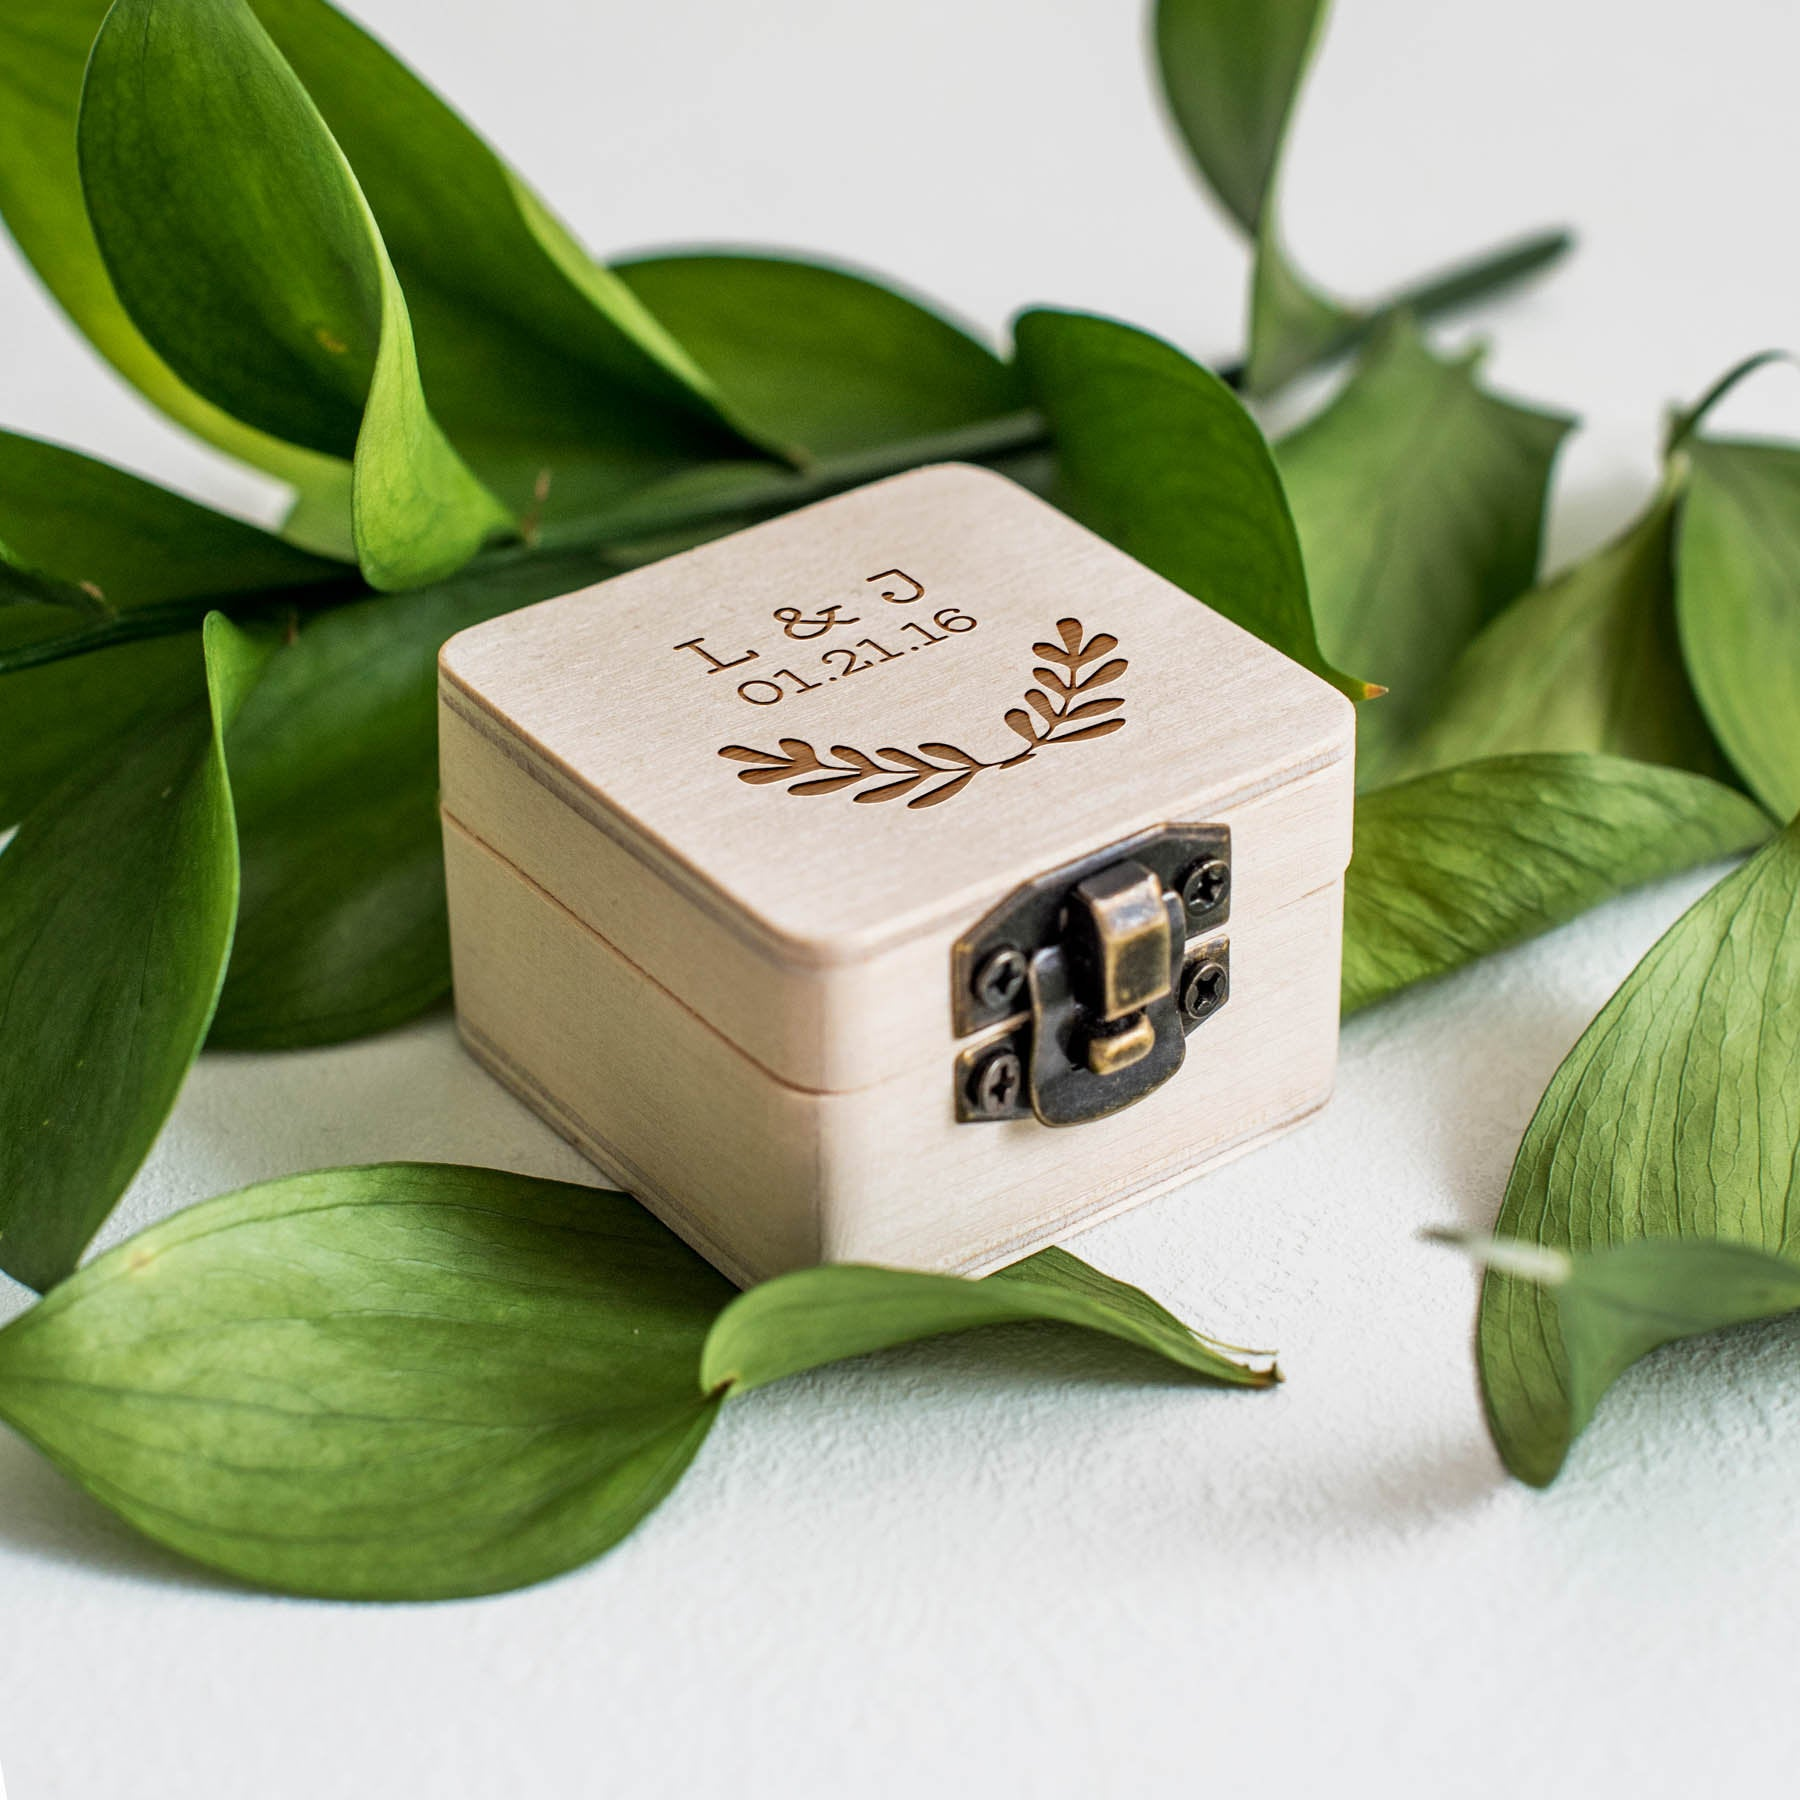 Rustic Wooden Ring Box Personalized Wedding Ring Bearer Box Rustic Ring Bearer Pillow Wedding Gift Anniversary Gift